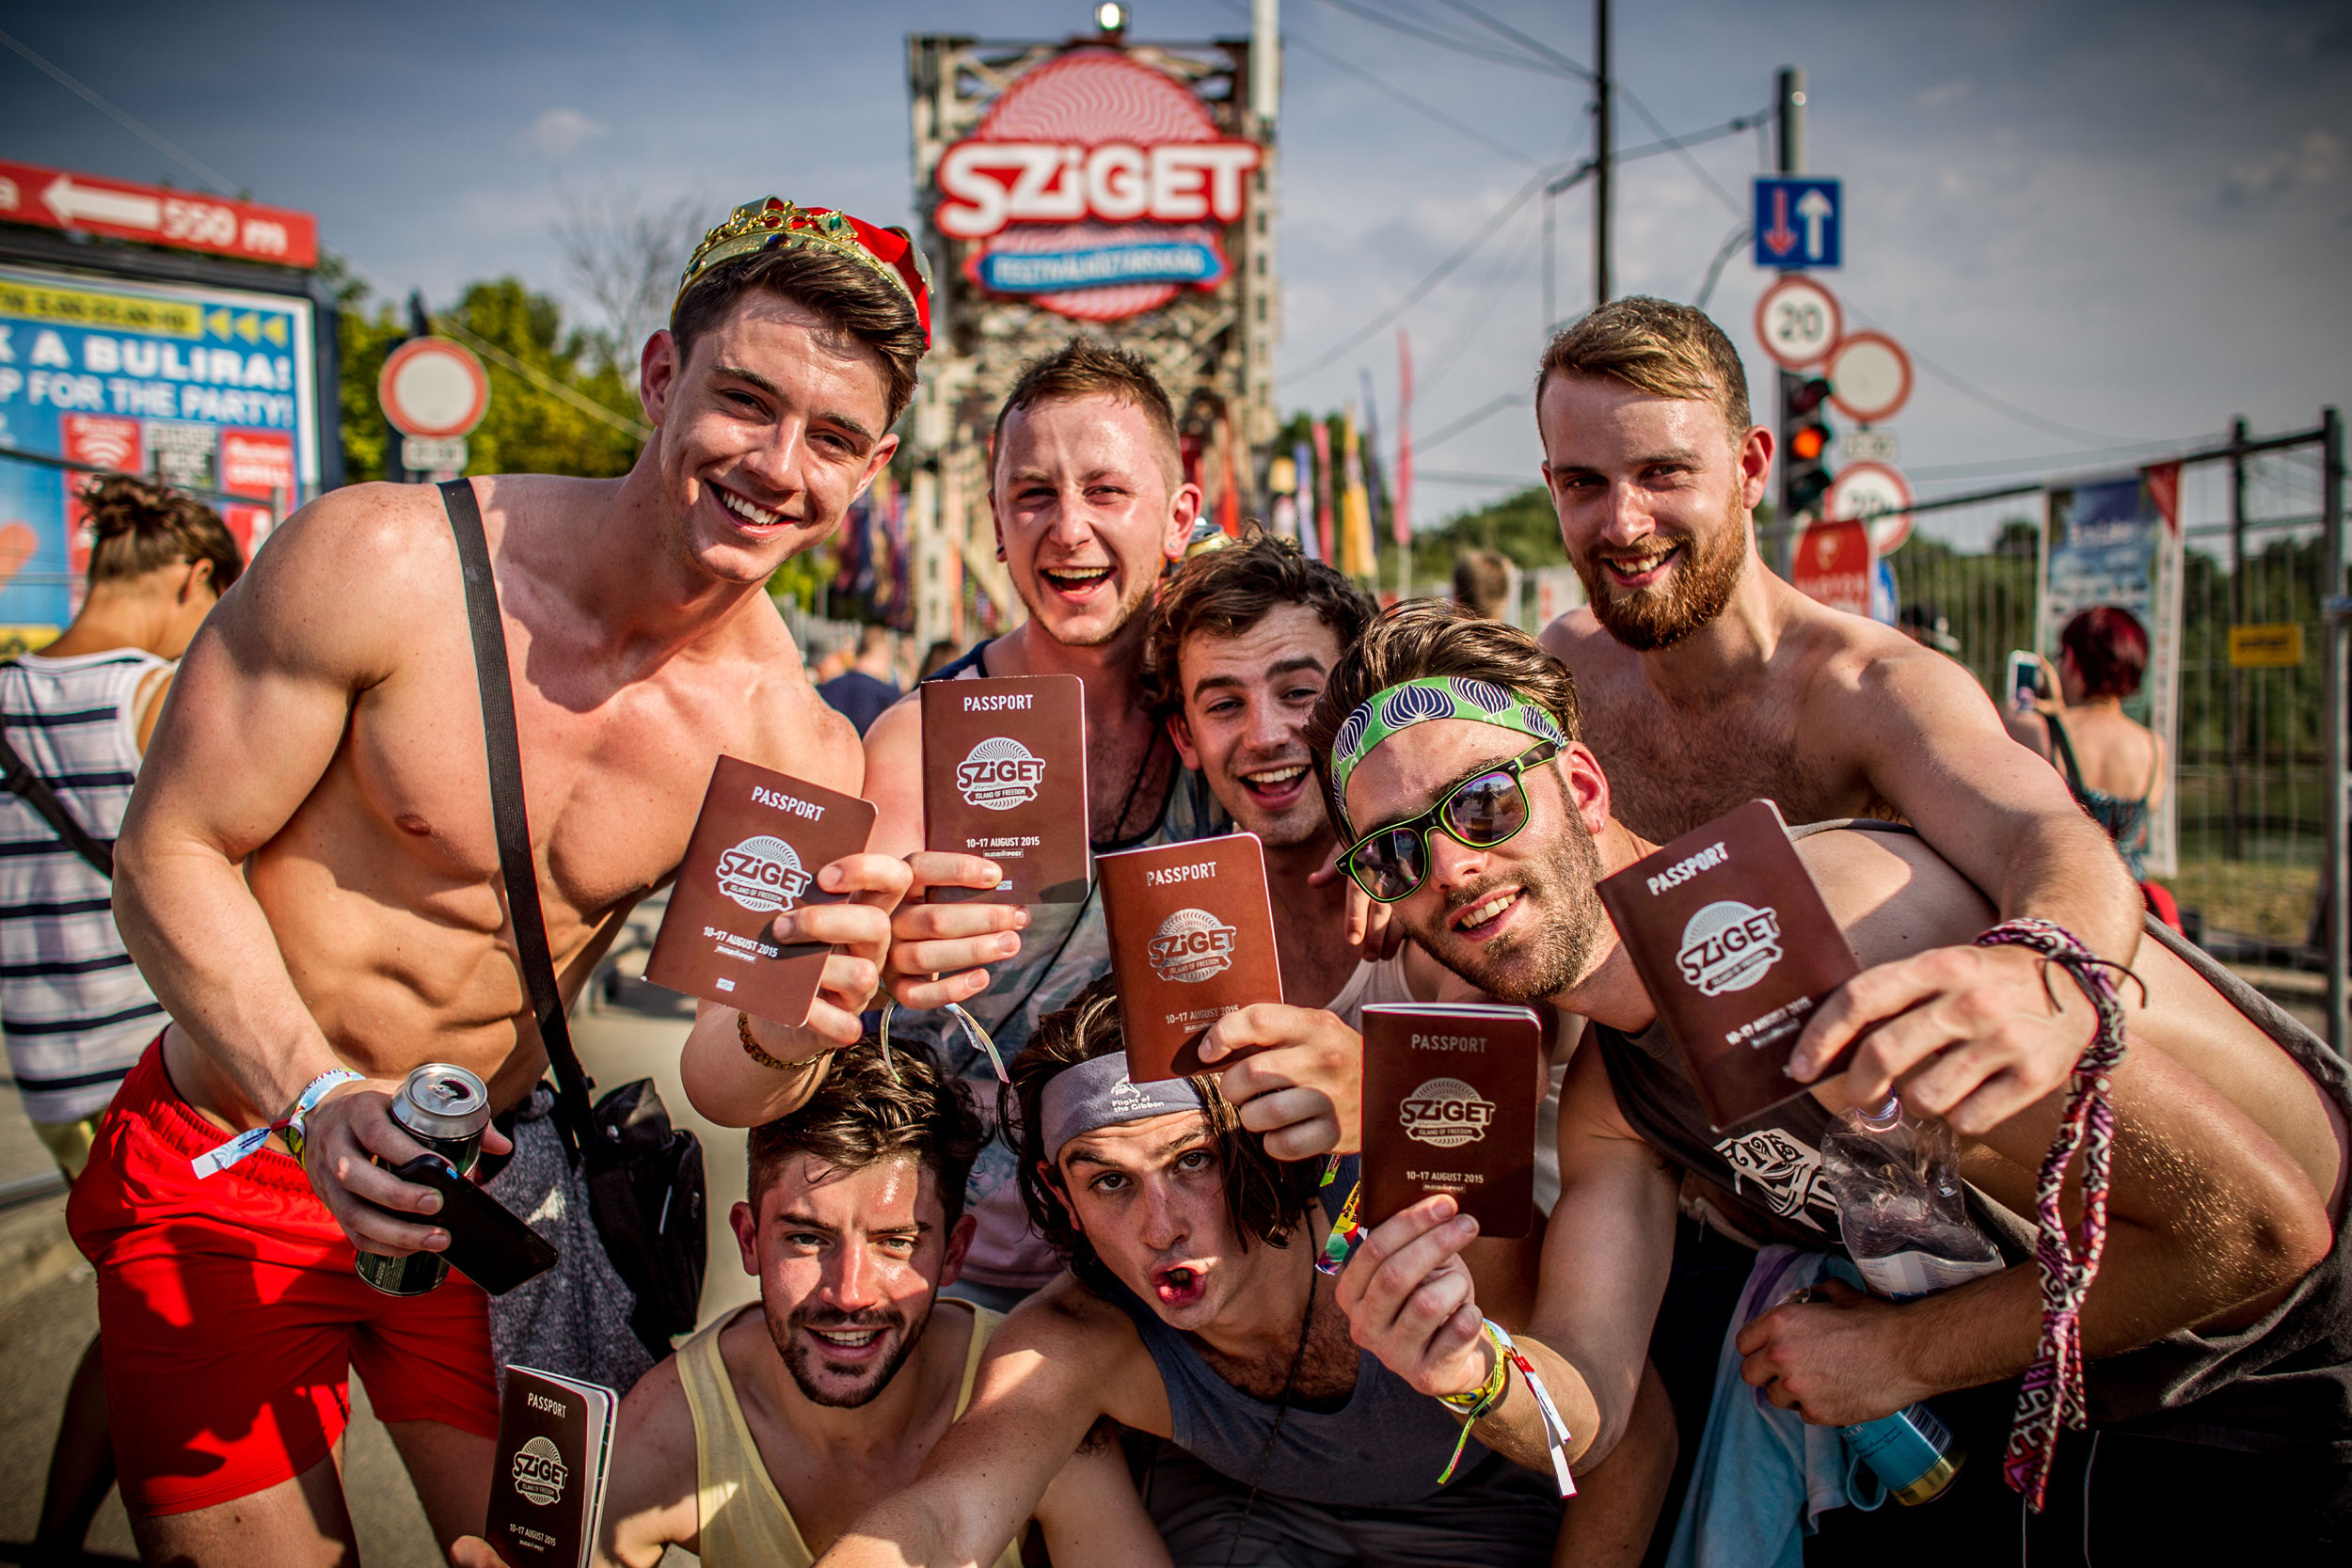 Men hold up their Sziget passports